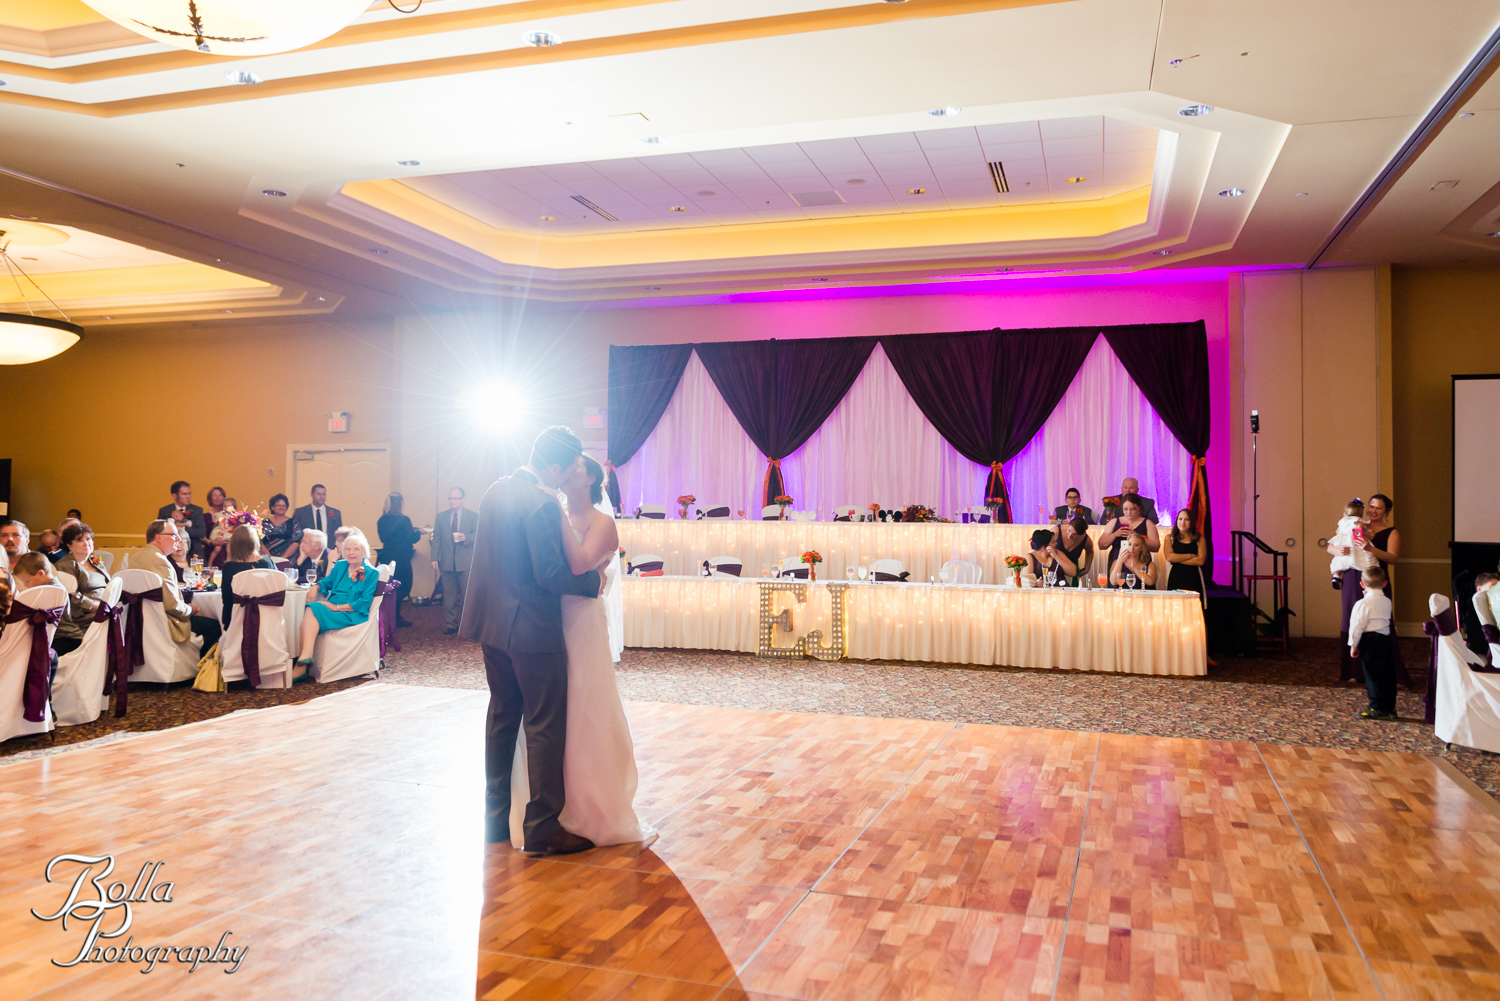 Bolla_Photography_St_Louis_wedding_photographer-0451.jpg